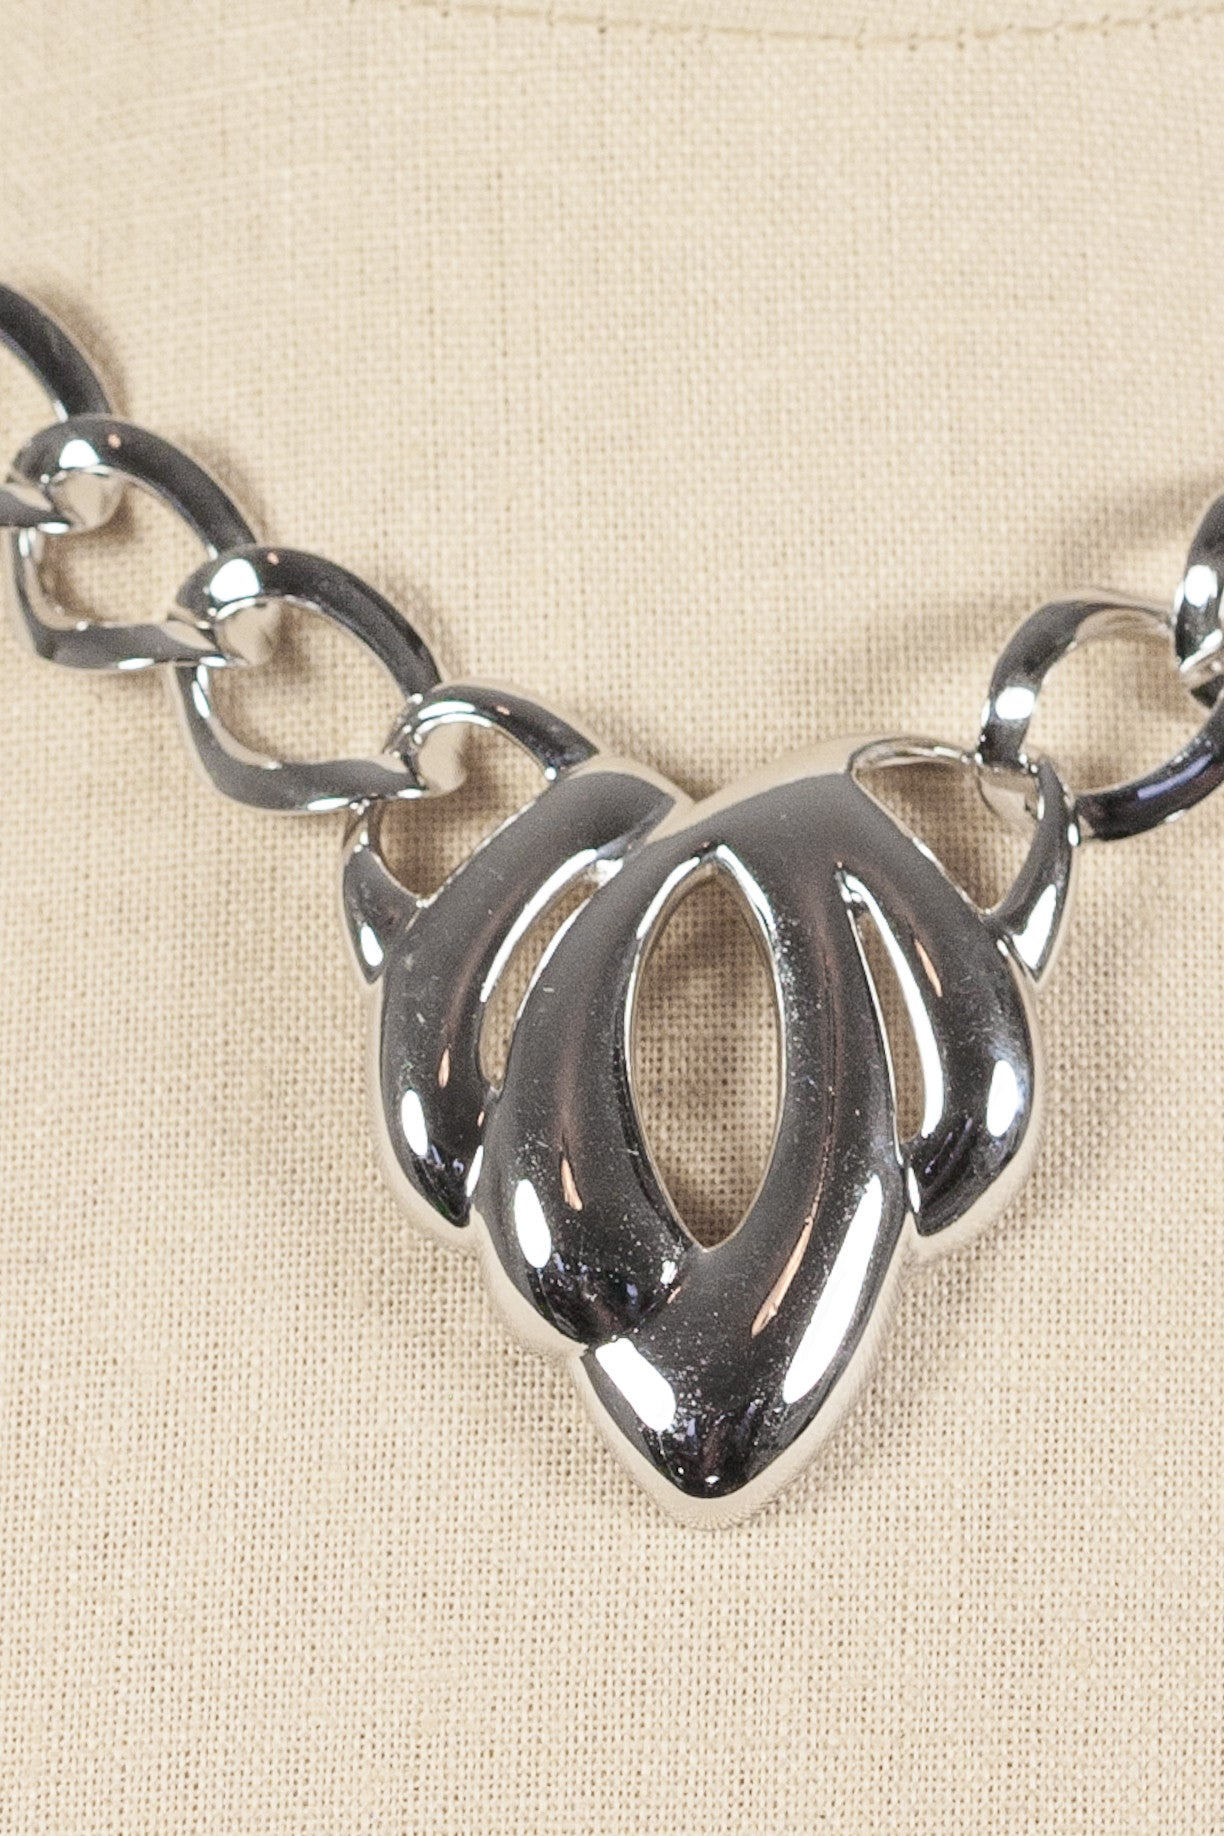 90's__Napier__Silver Link Necklace